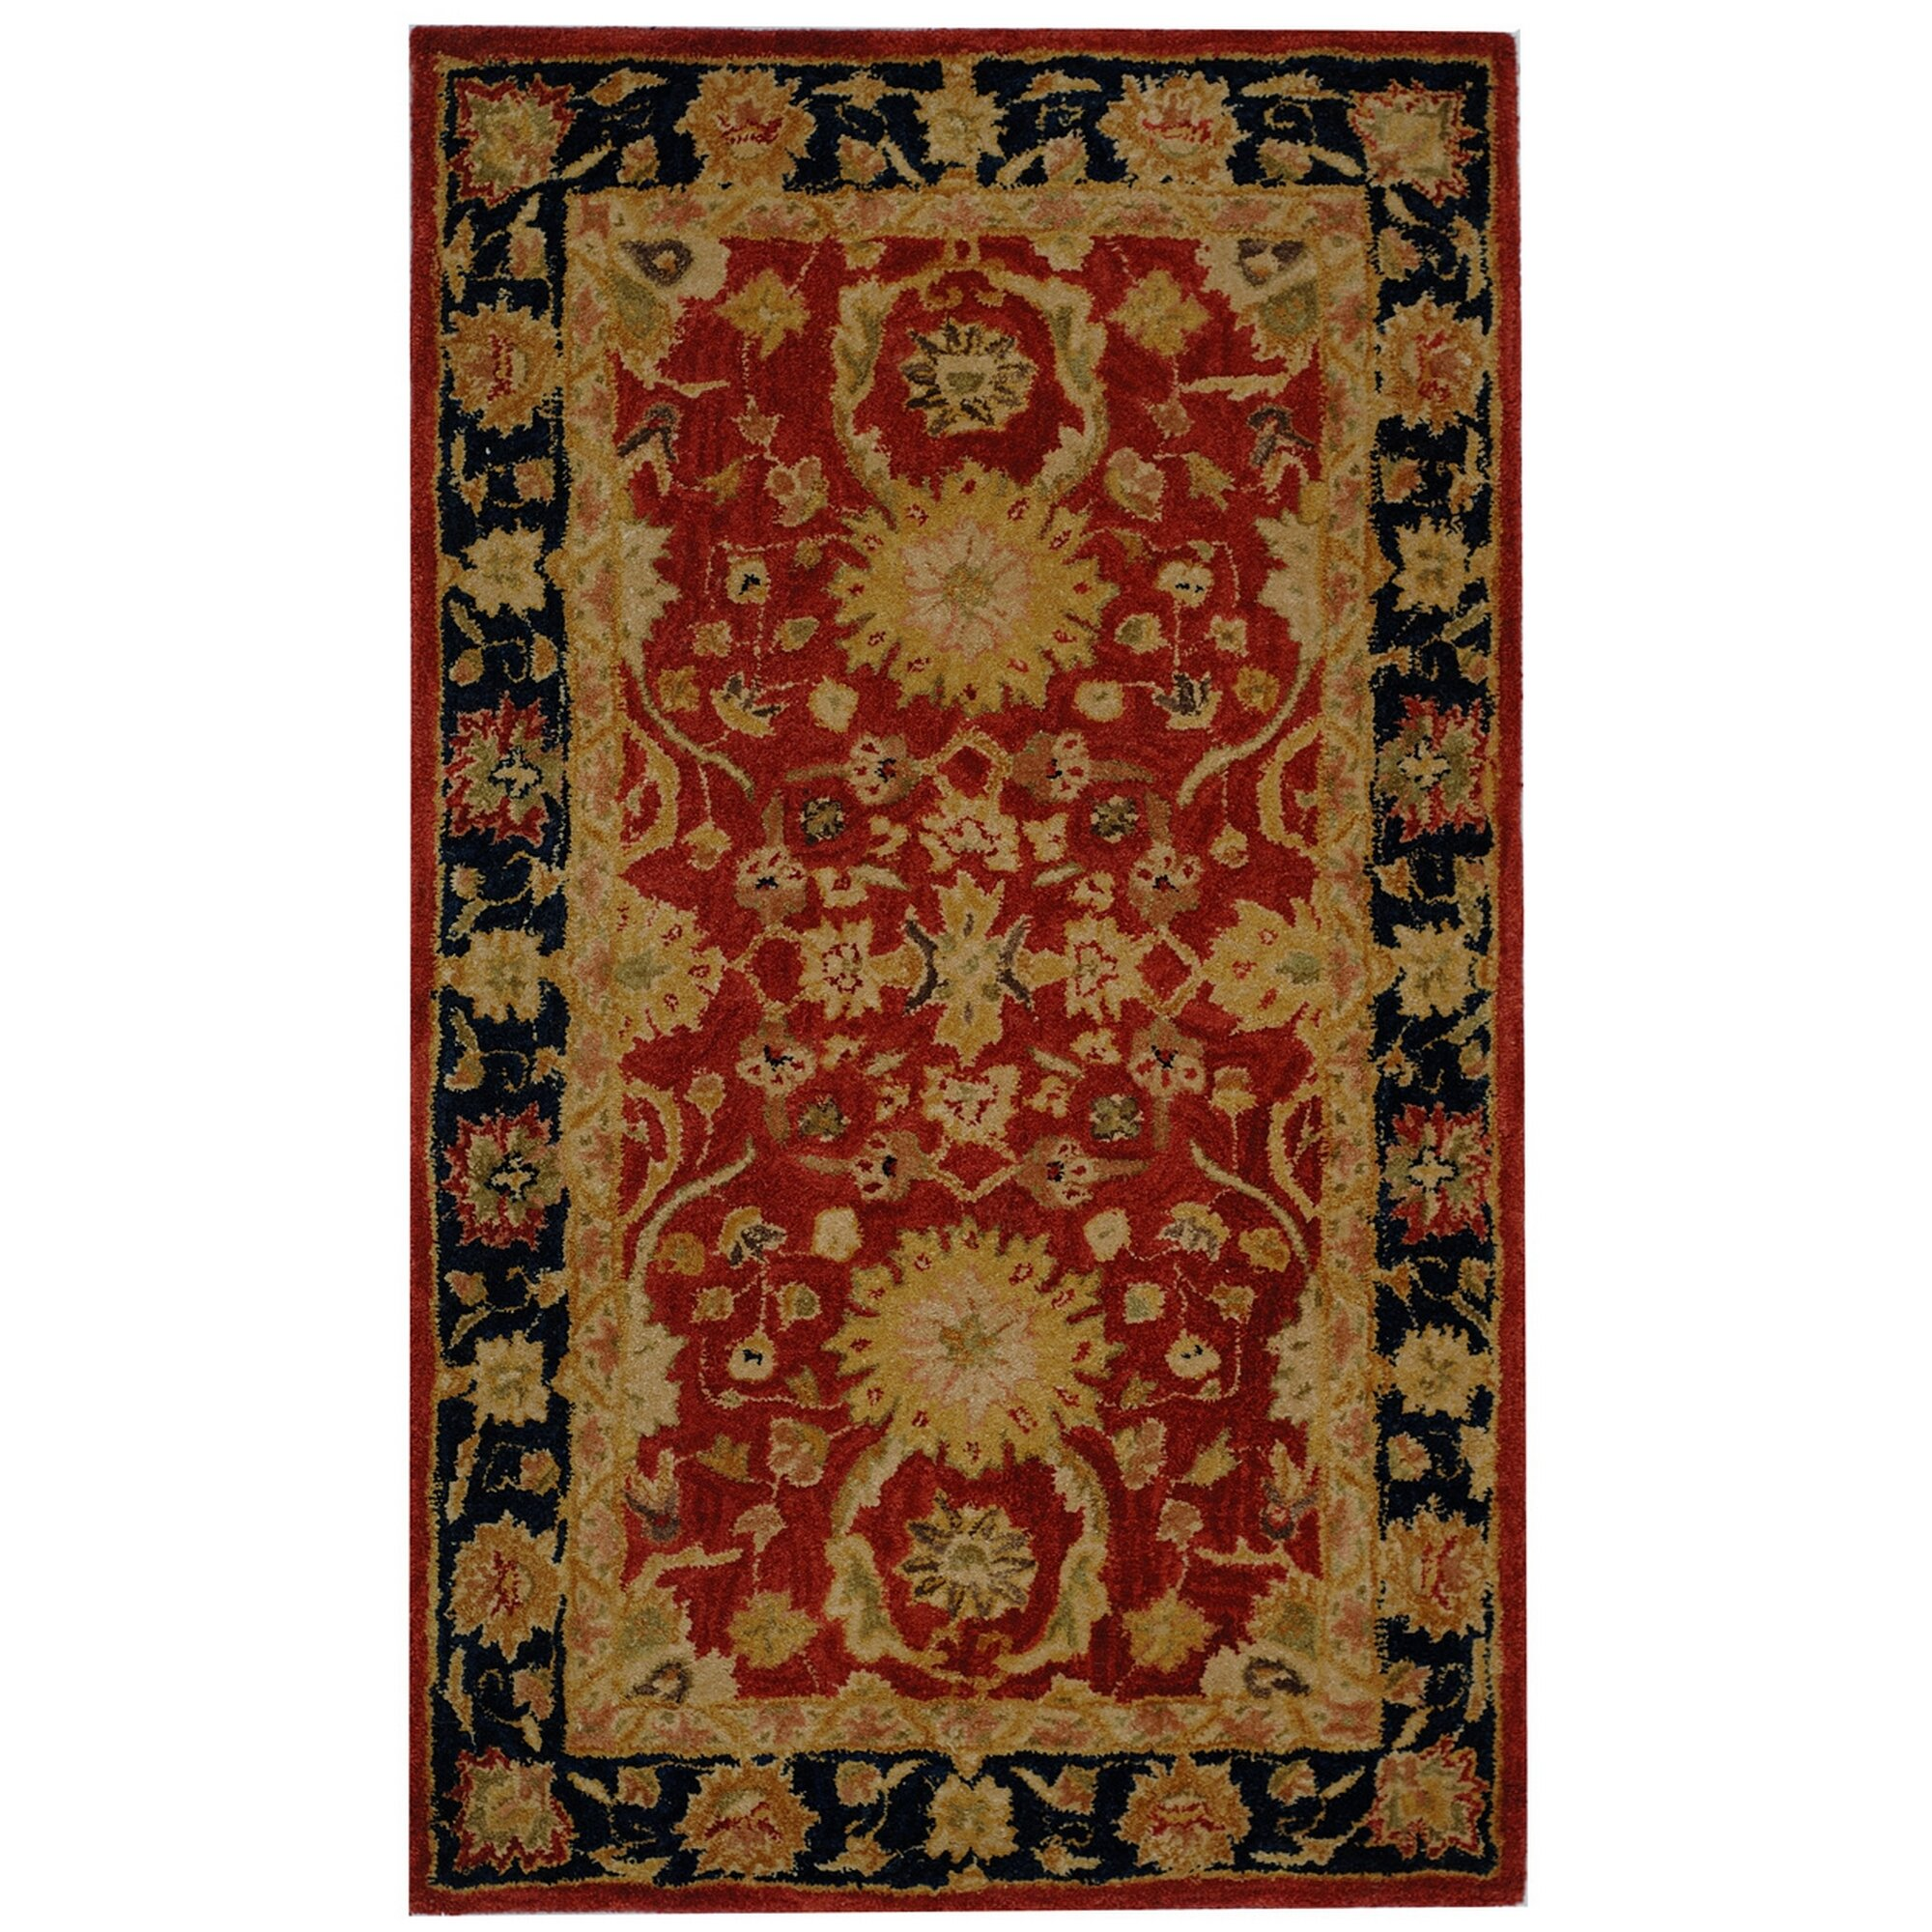 New Brand Devlin Persian Rug Handmade 100 Wool Area Rugs: Safavieh Anatolia Red/Navy Area Rug